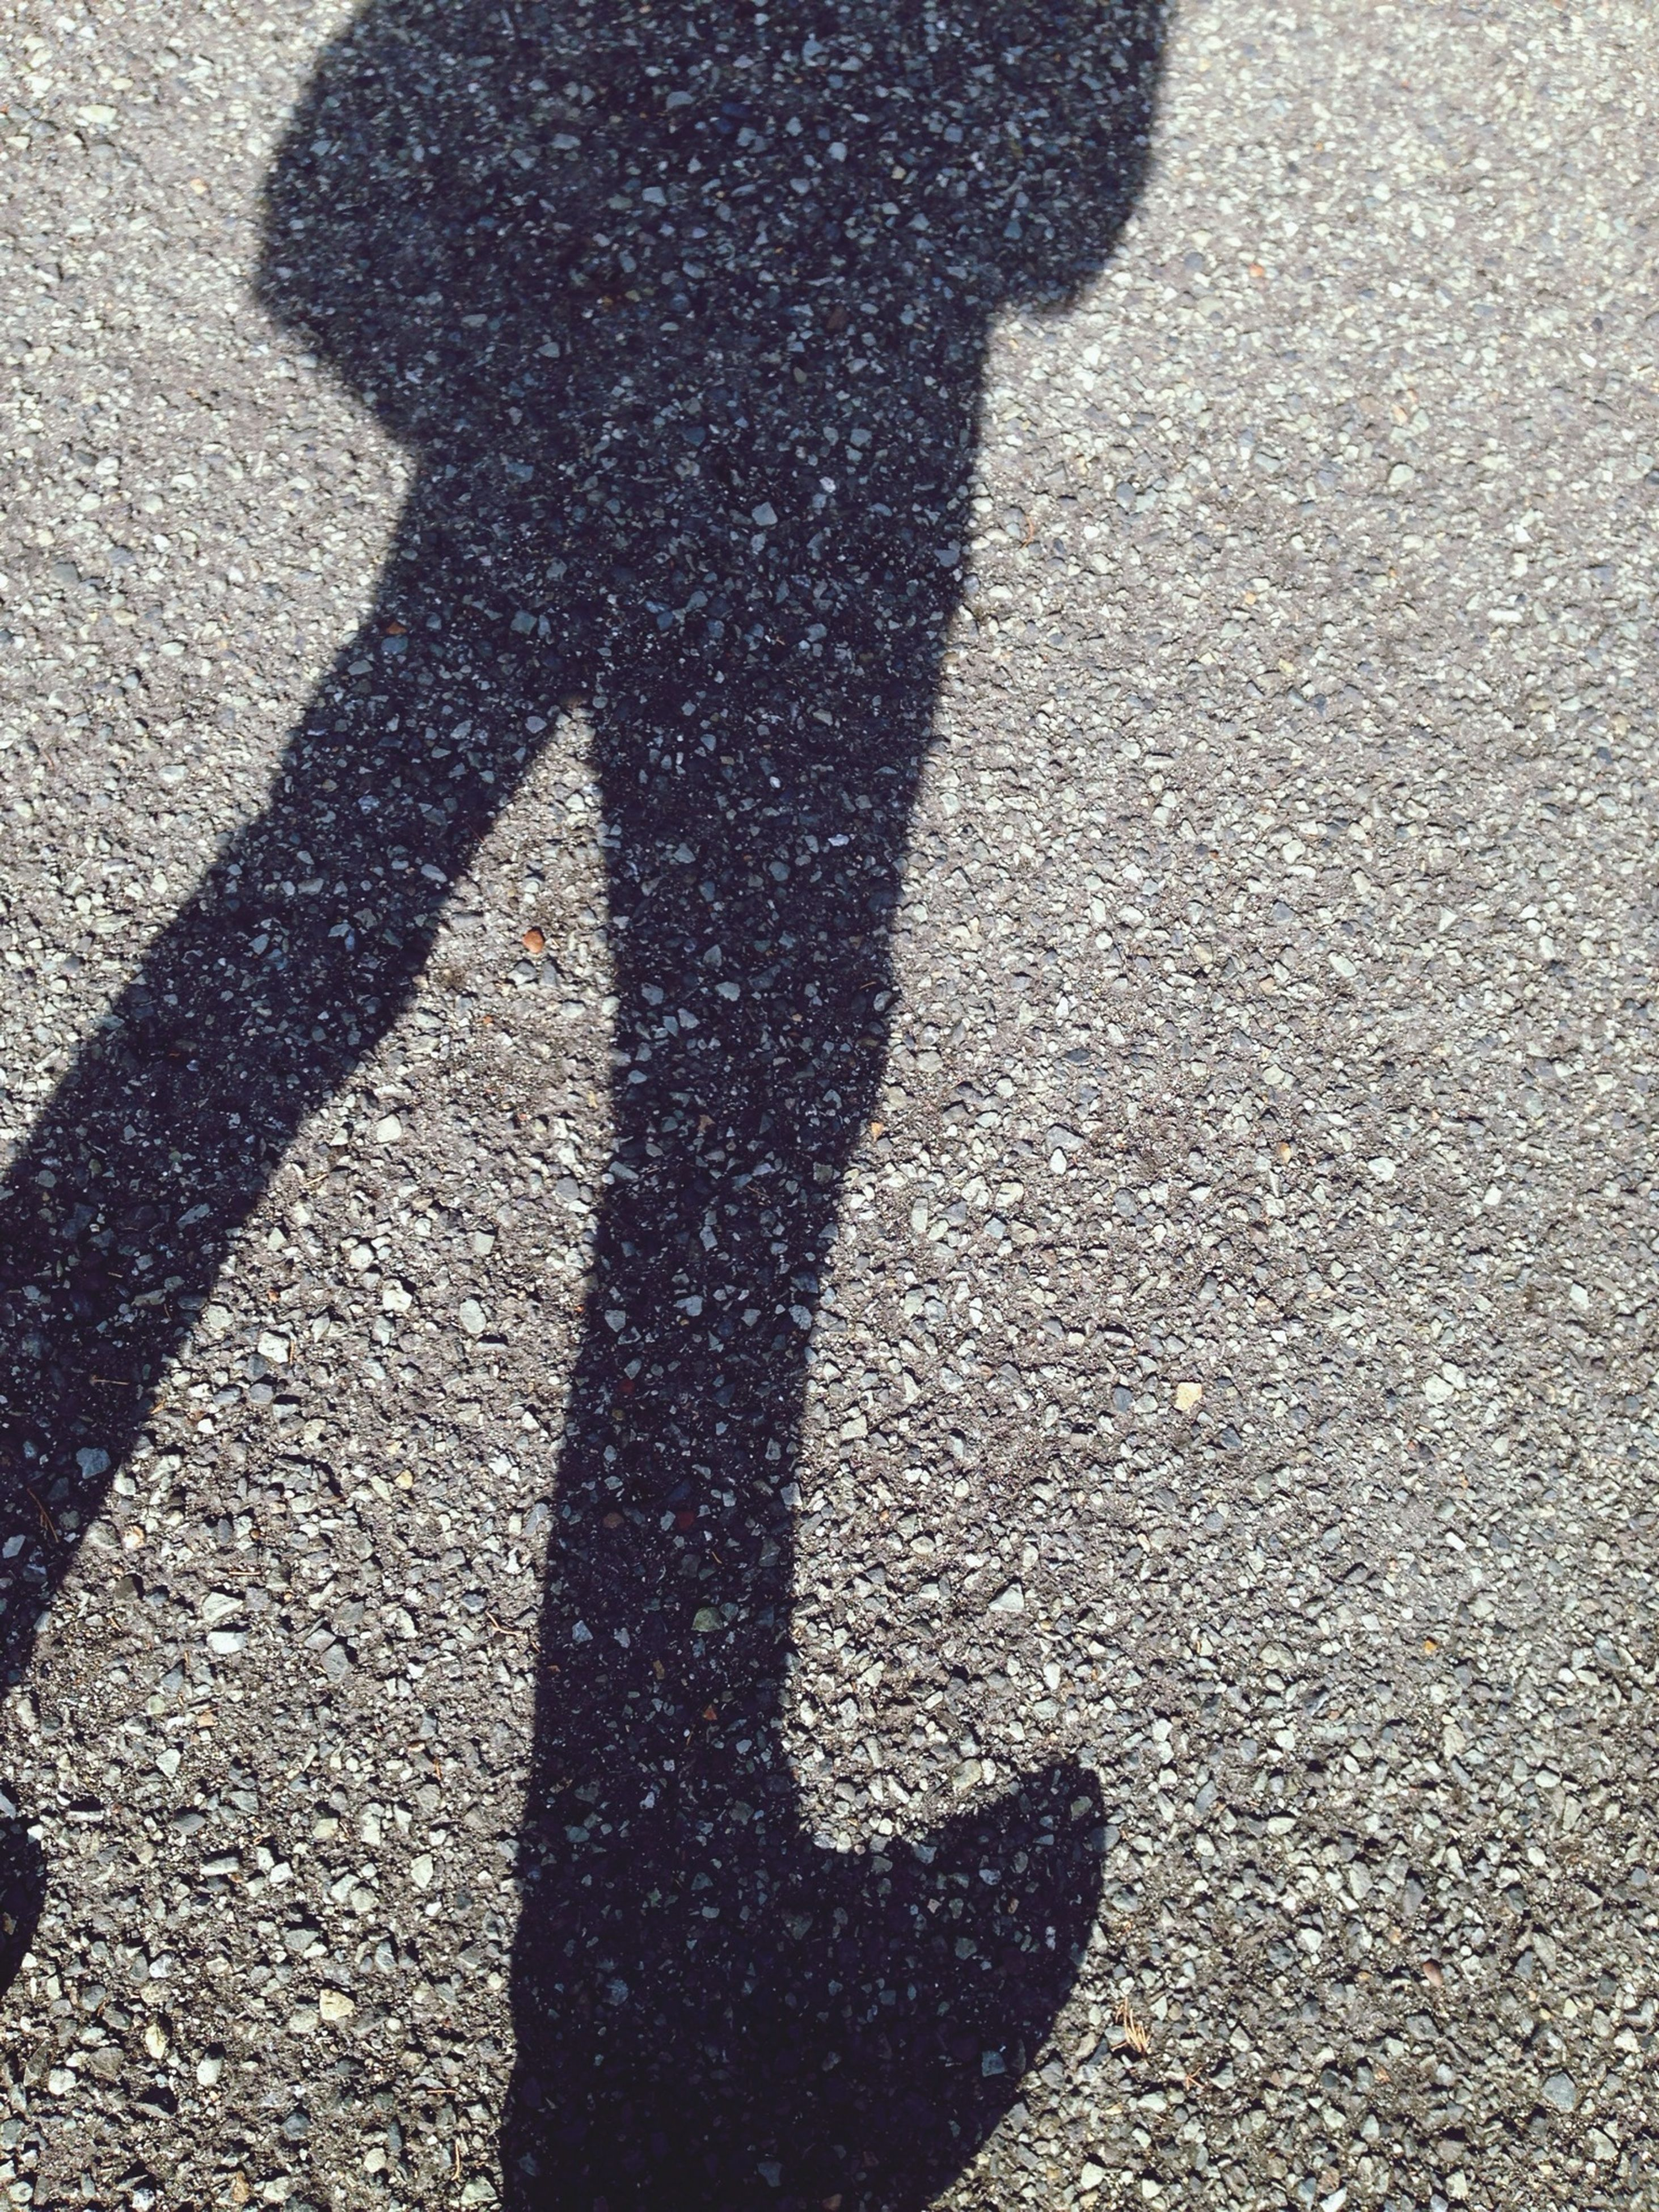 shadow, sunlight, focus on shadow, high angle view, street, lifestyles, leisure activity, road, asphalt, standing, unrecognizable person, men, outdoors, day, walking, silhouette, outline